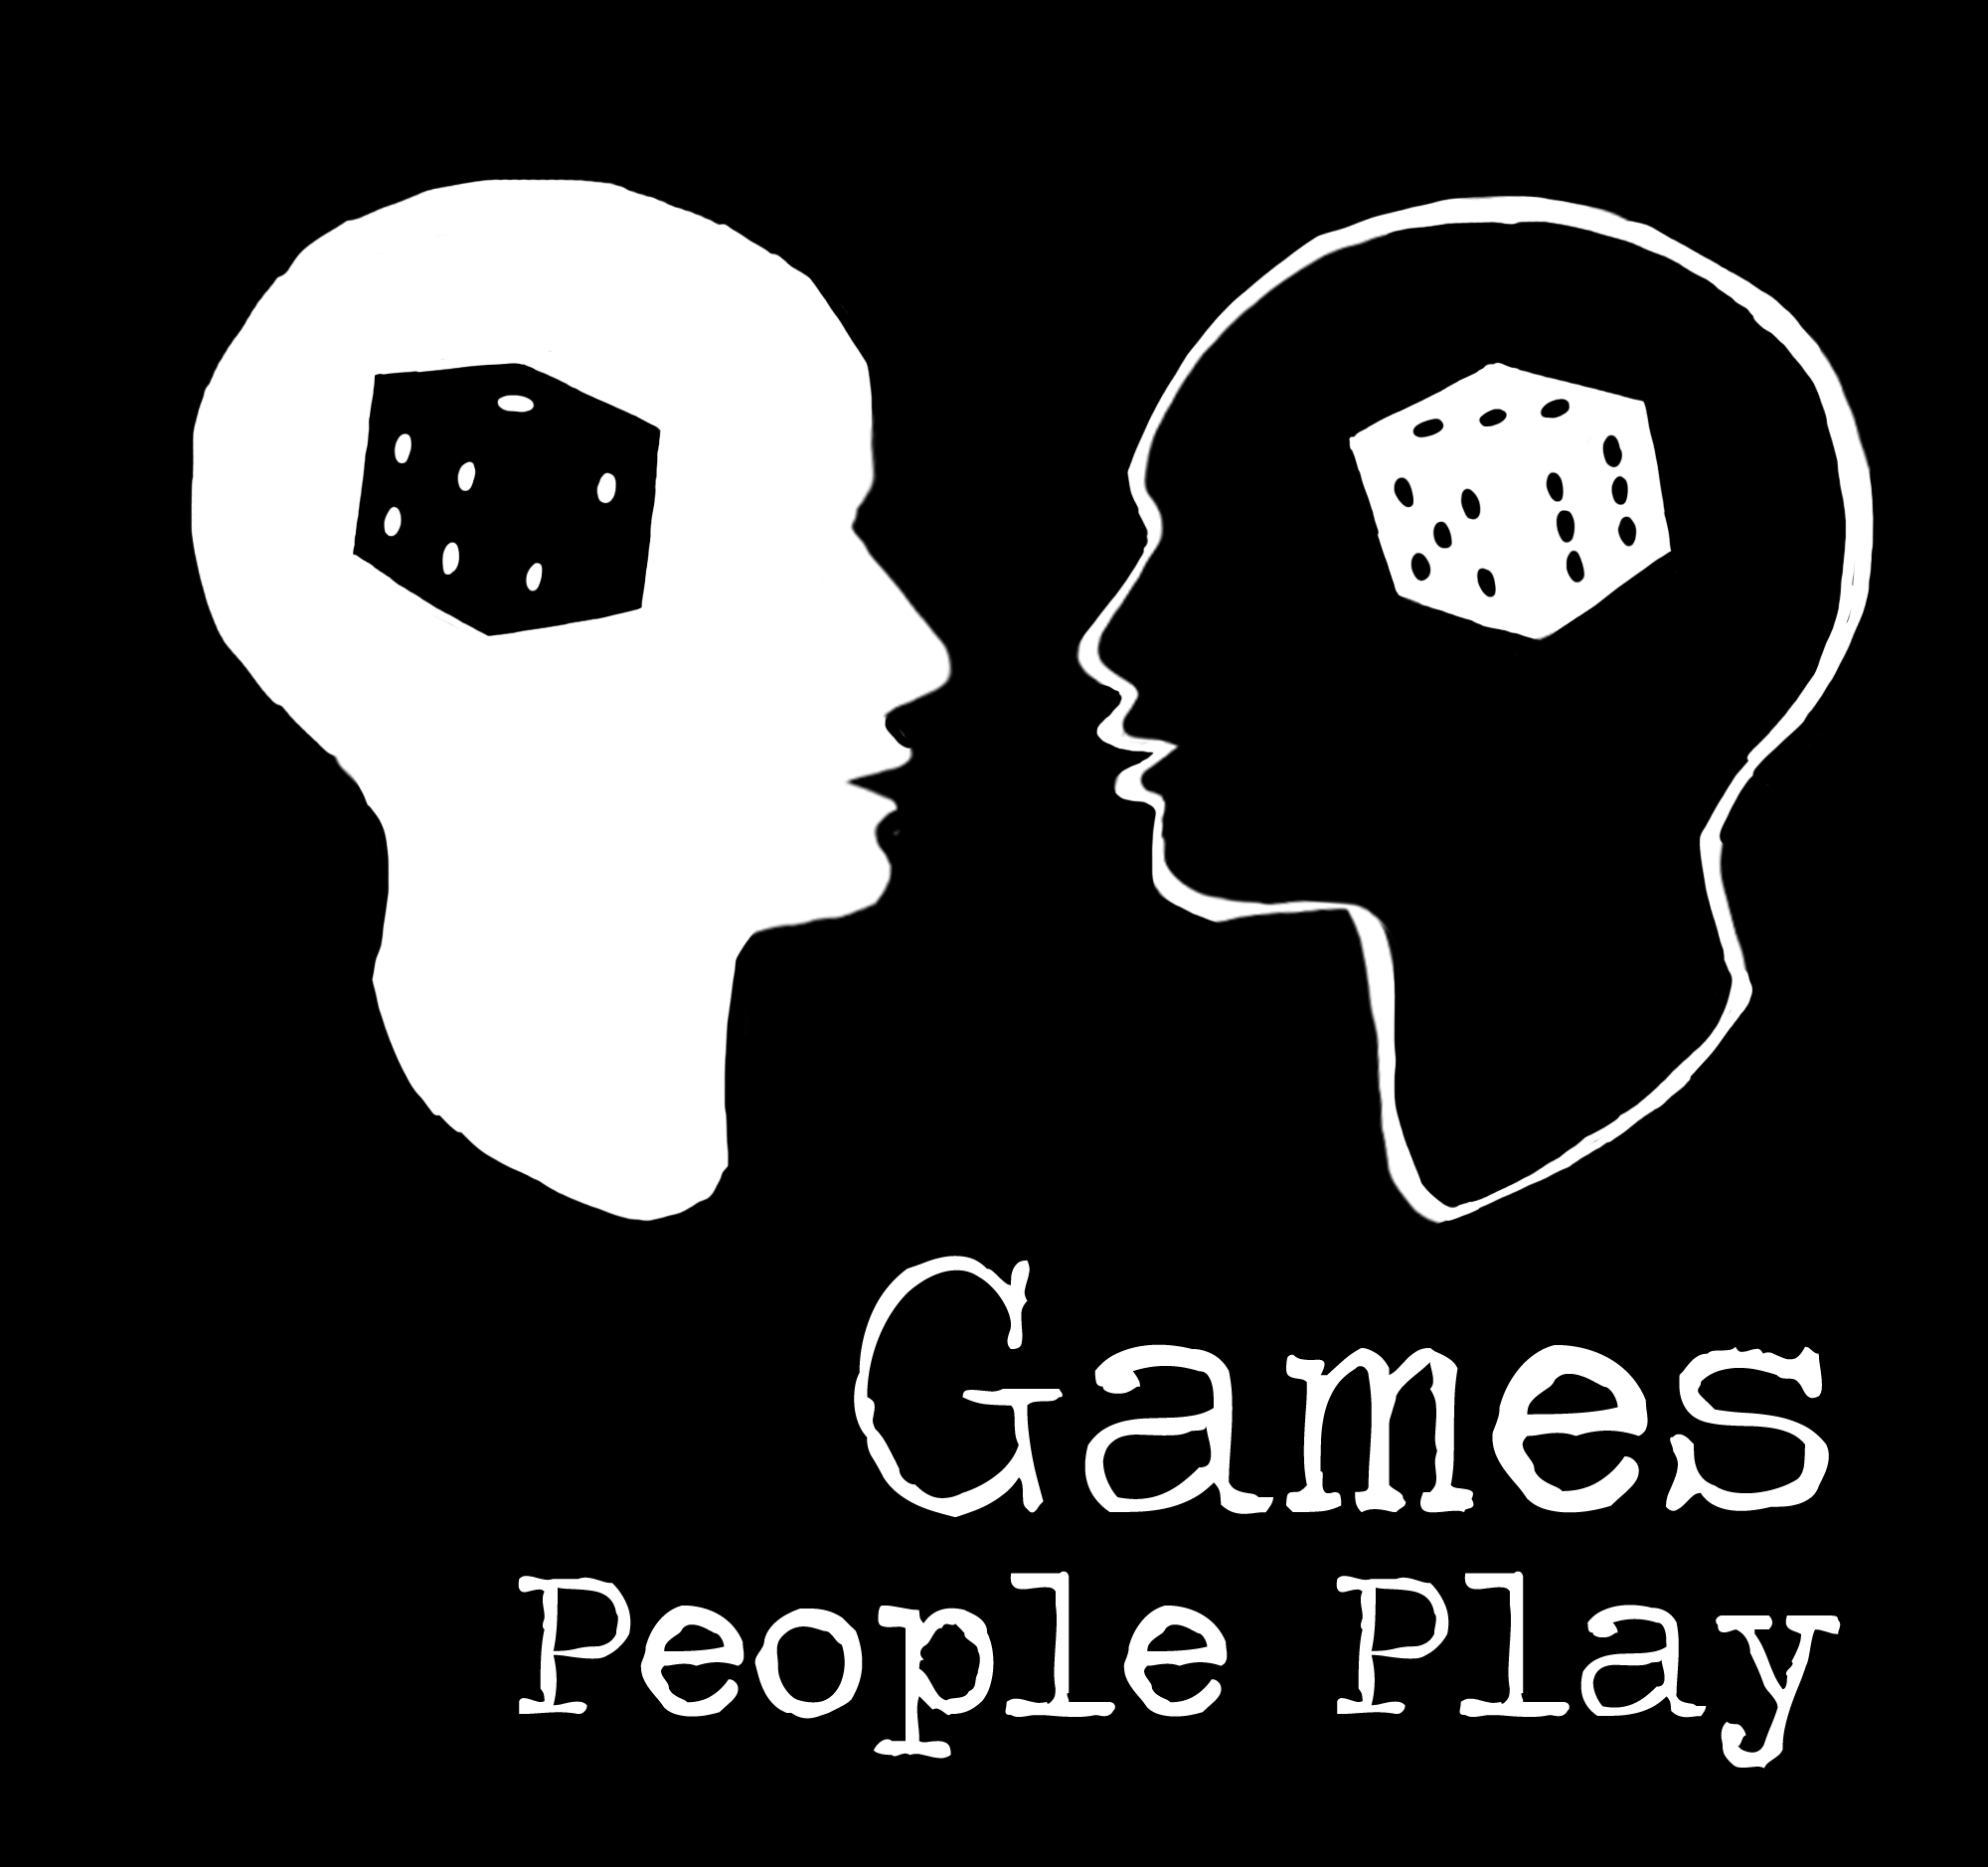 Episode 6: The Nostalgia Game